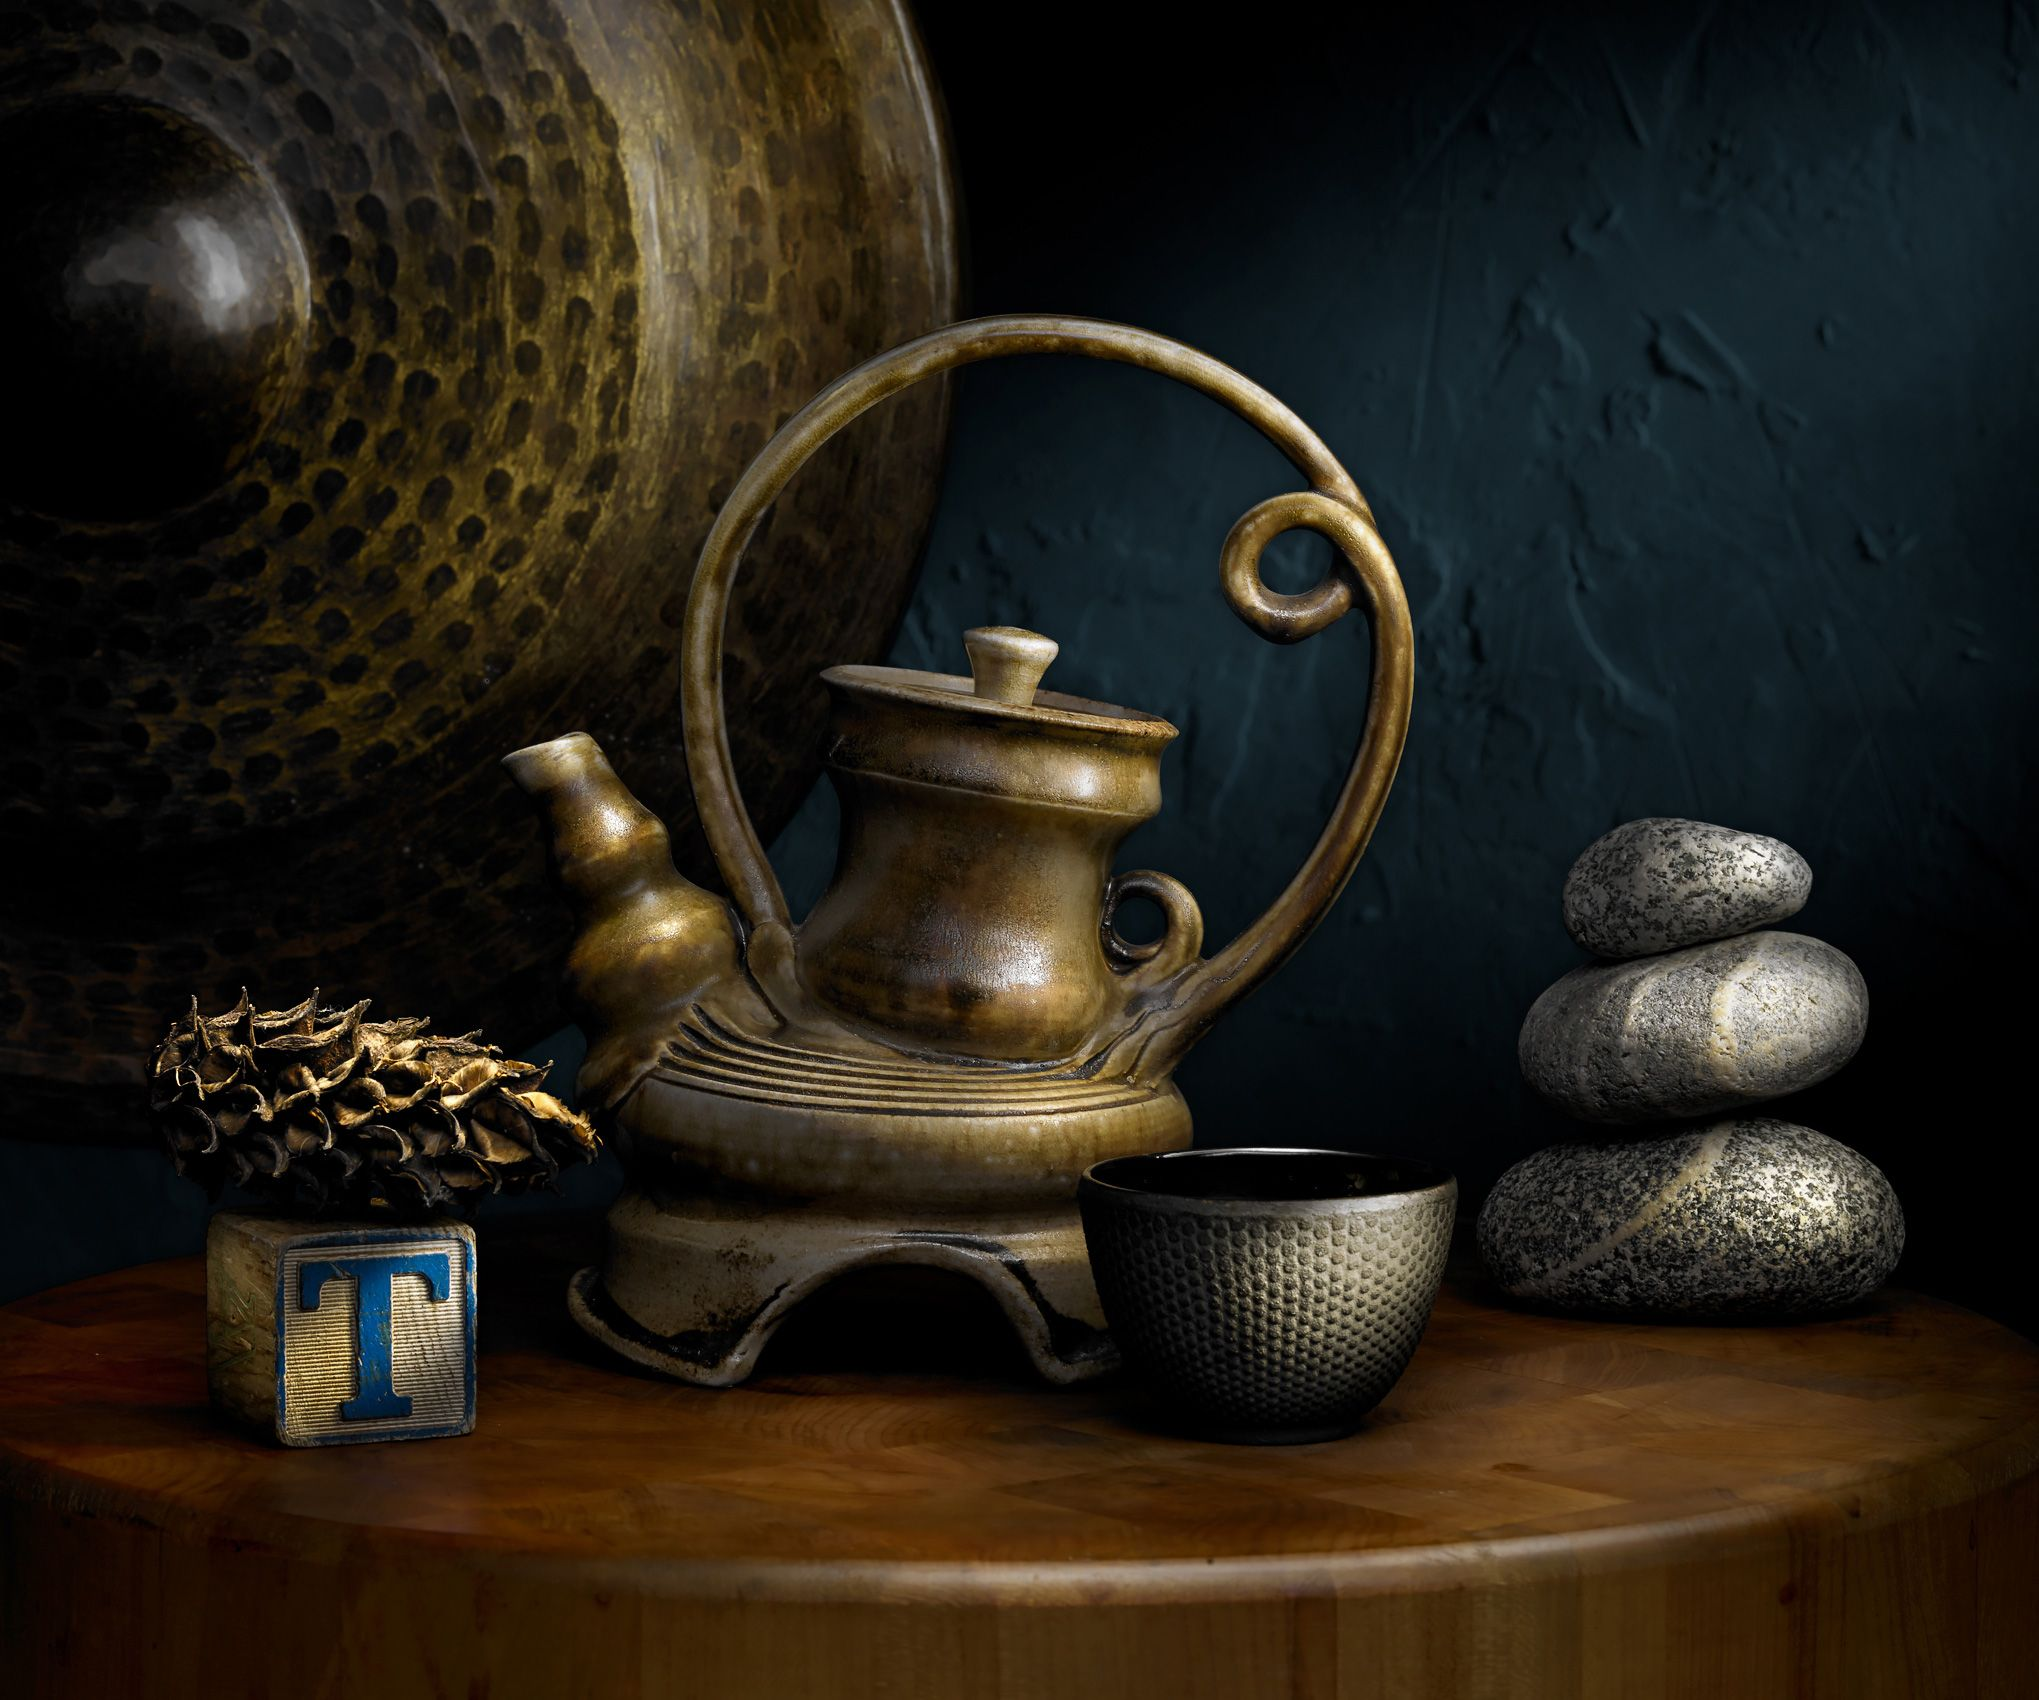 Still_Life_with_Teapot_and_Stones_LB.jpg